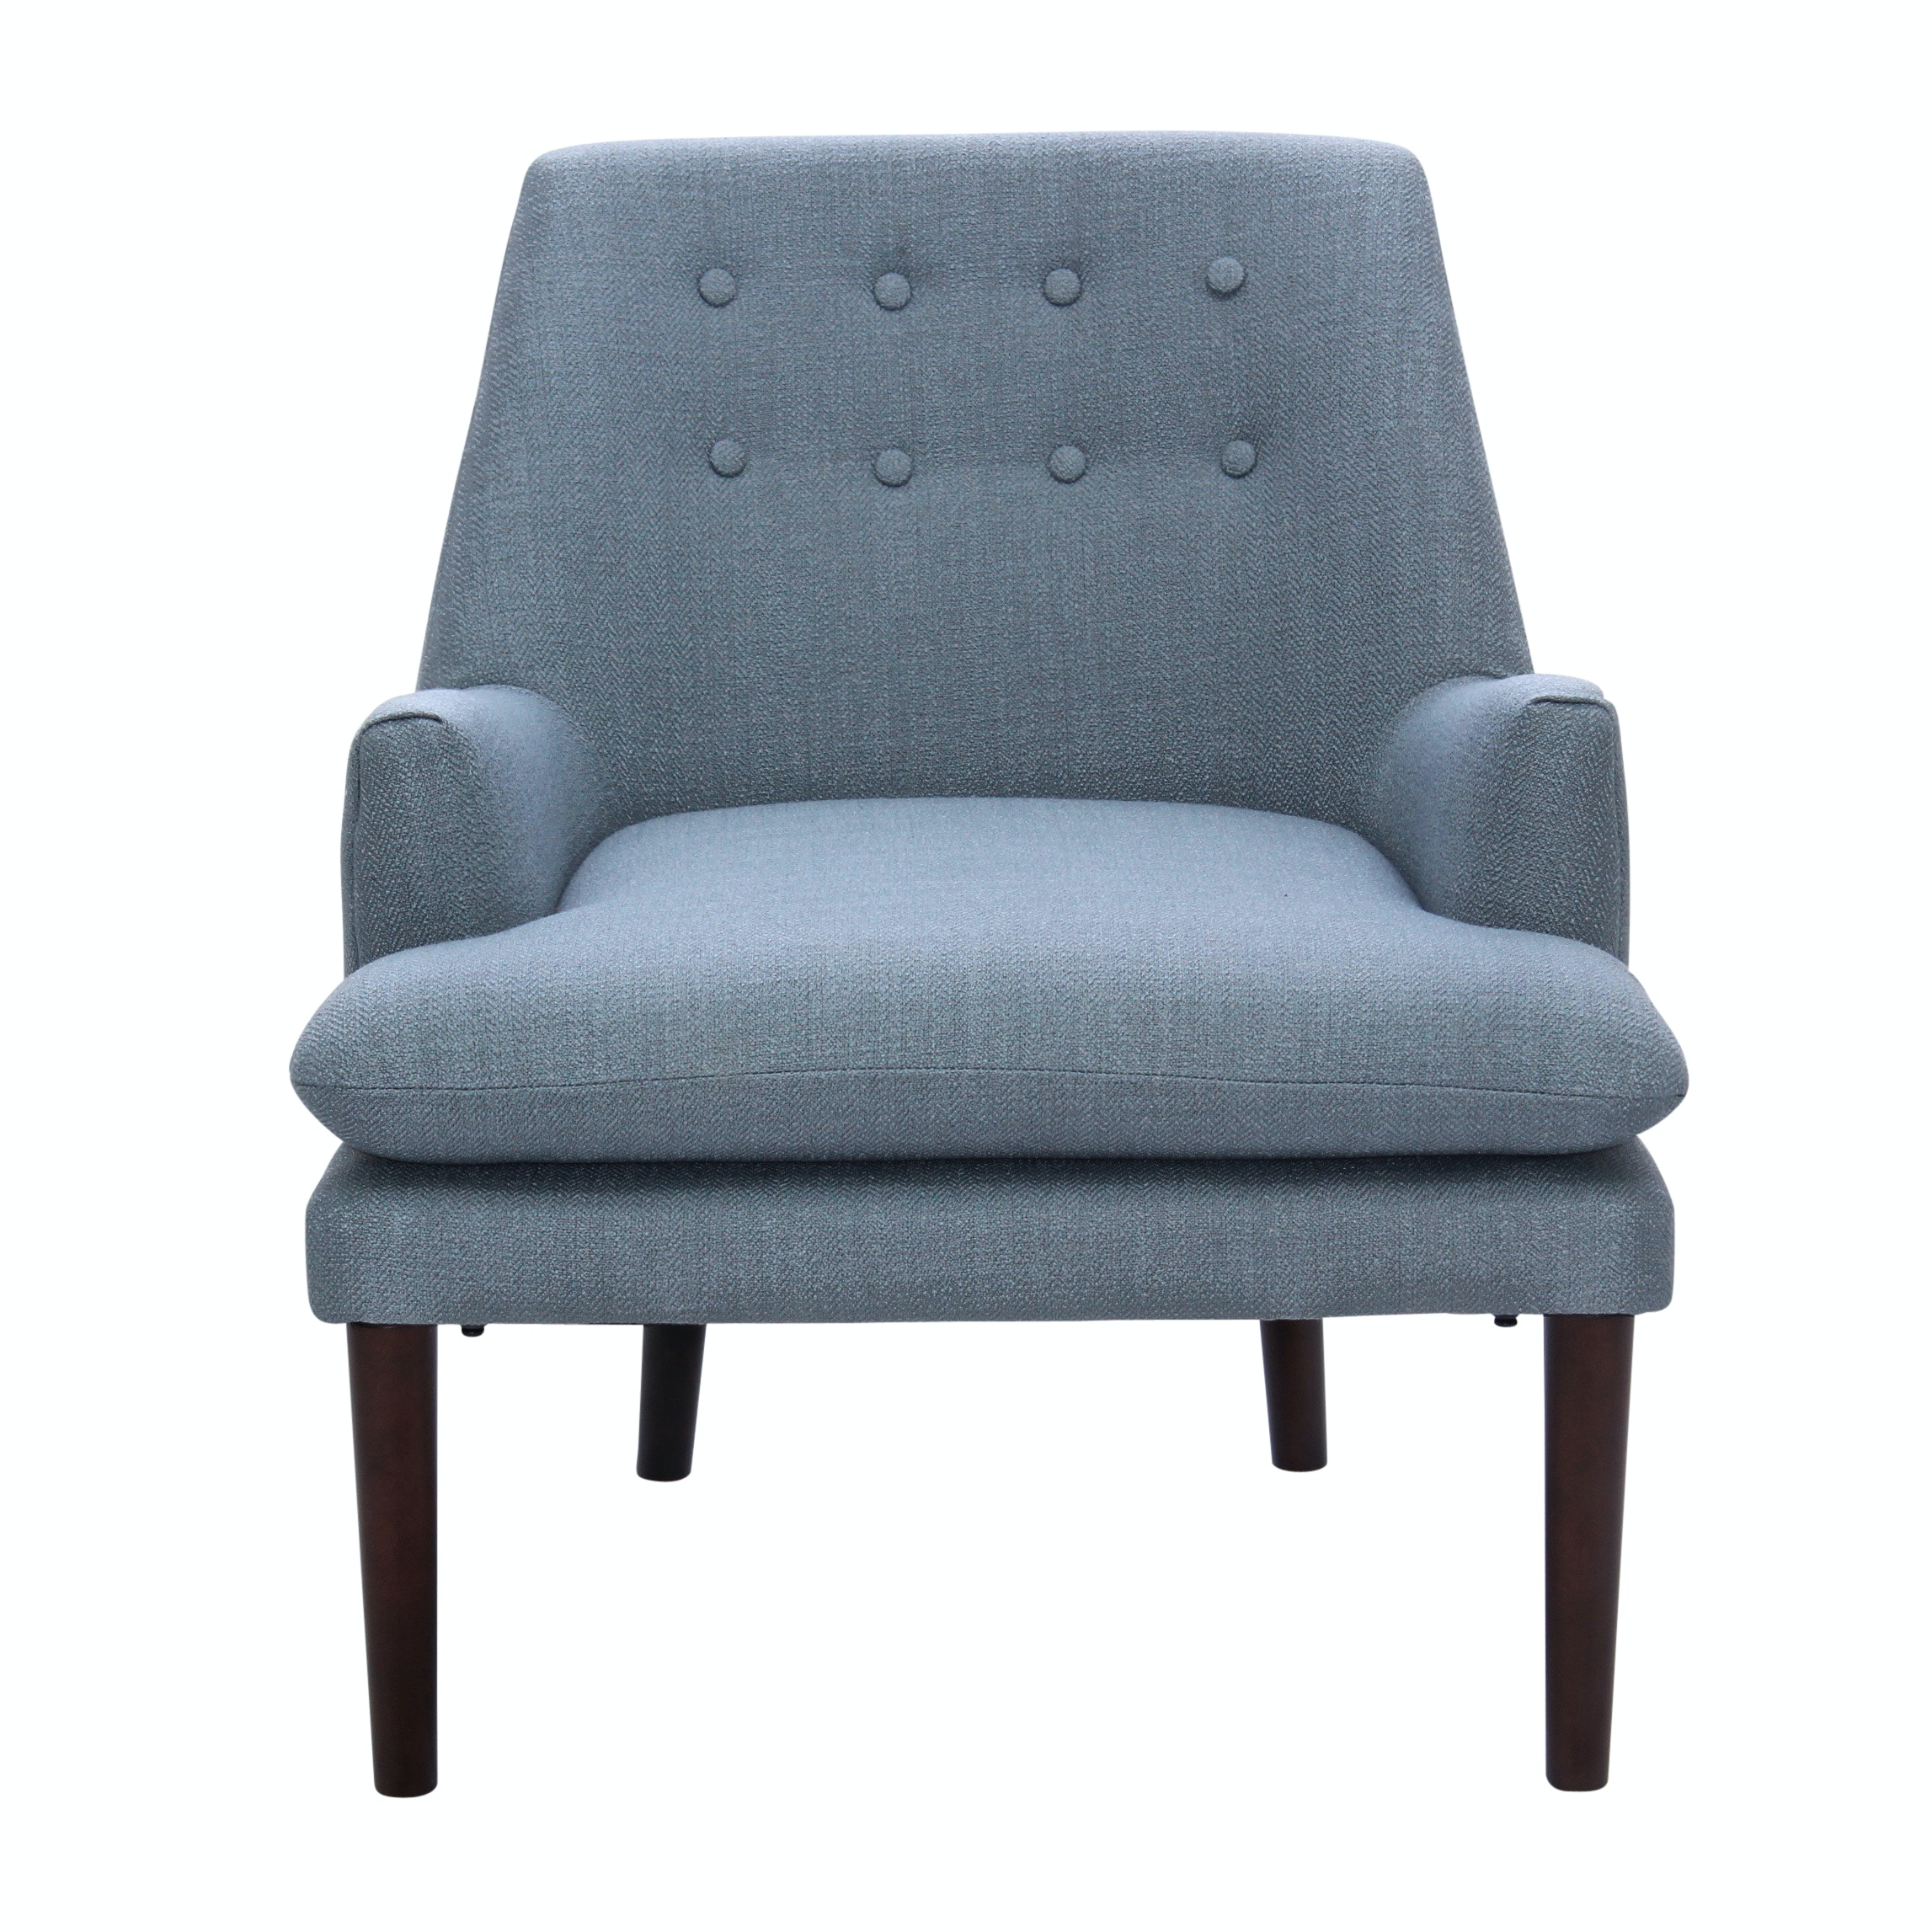 Madison Park Tufted Arm Chair, Contemporary